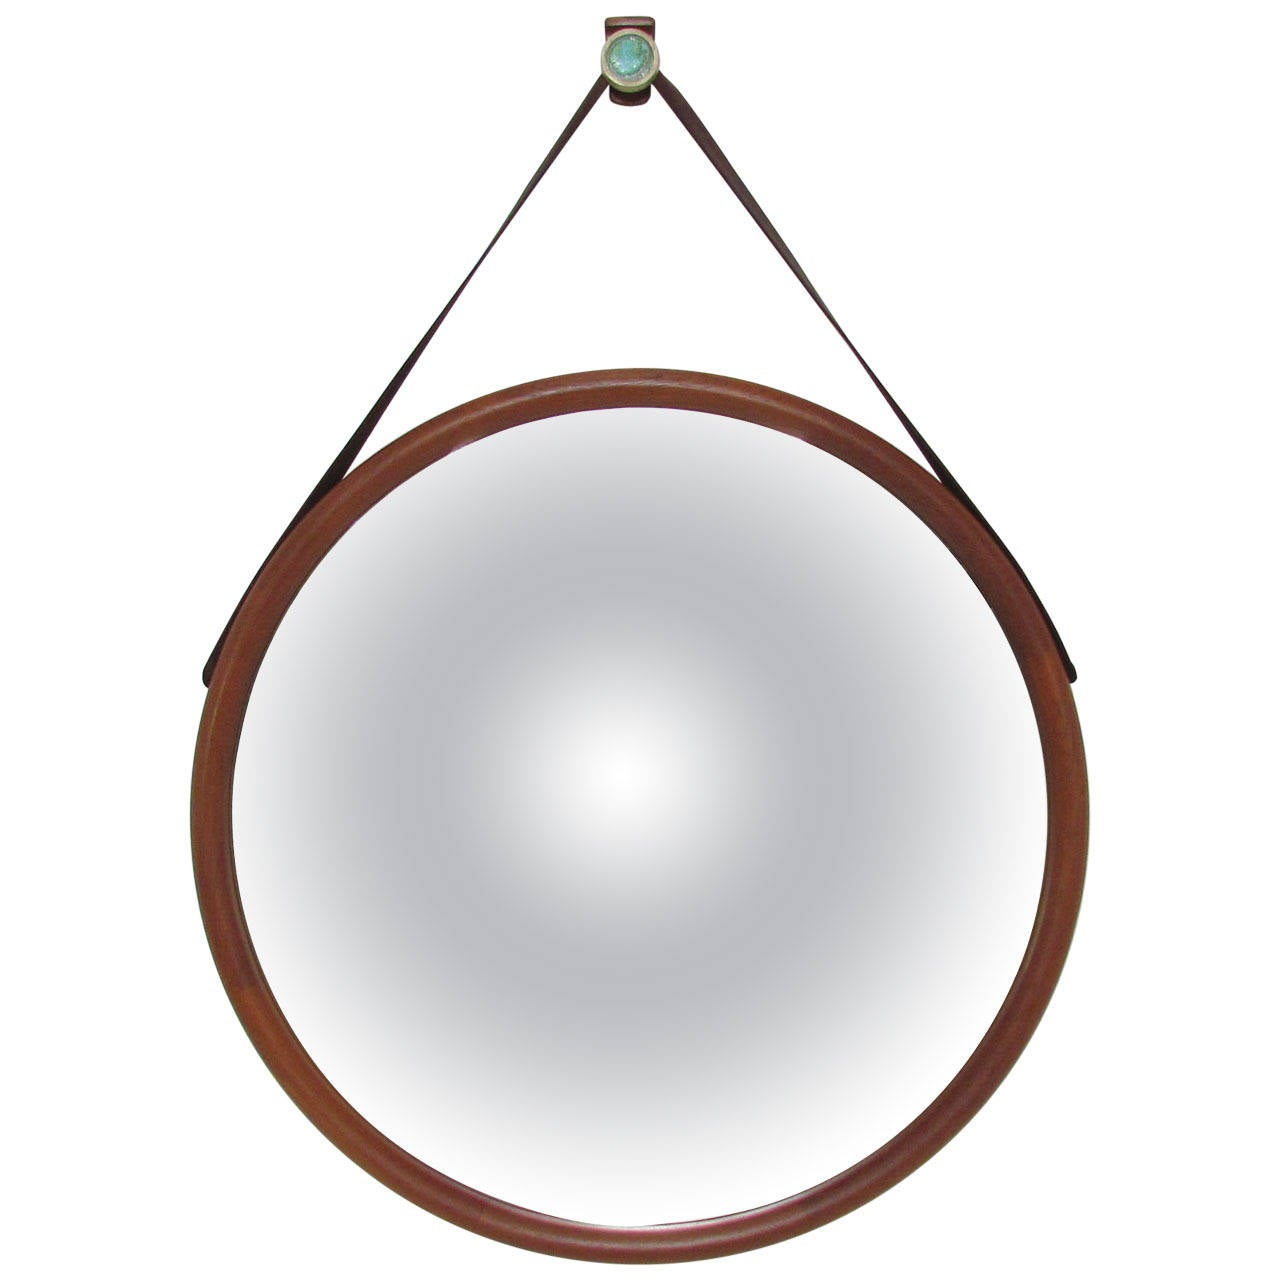 Large danish teak wall mirror with leather strap and tile hook at large danish teak wall mirror with leather strap and tile hook 1 amipublicfo Gallery